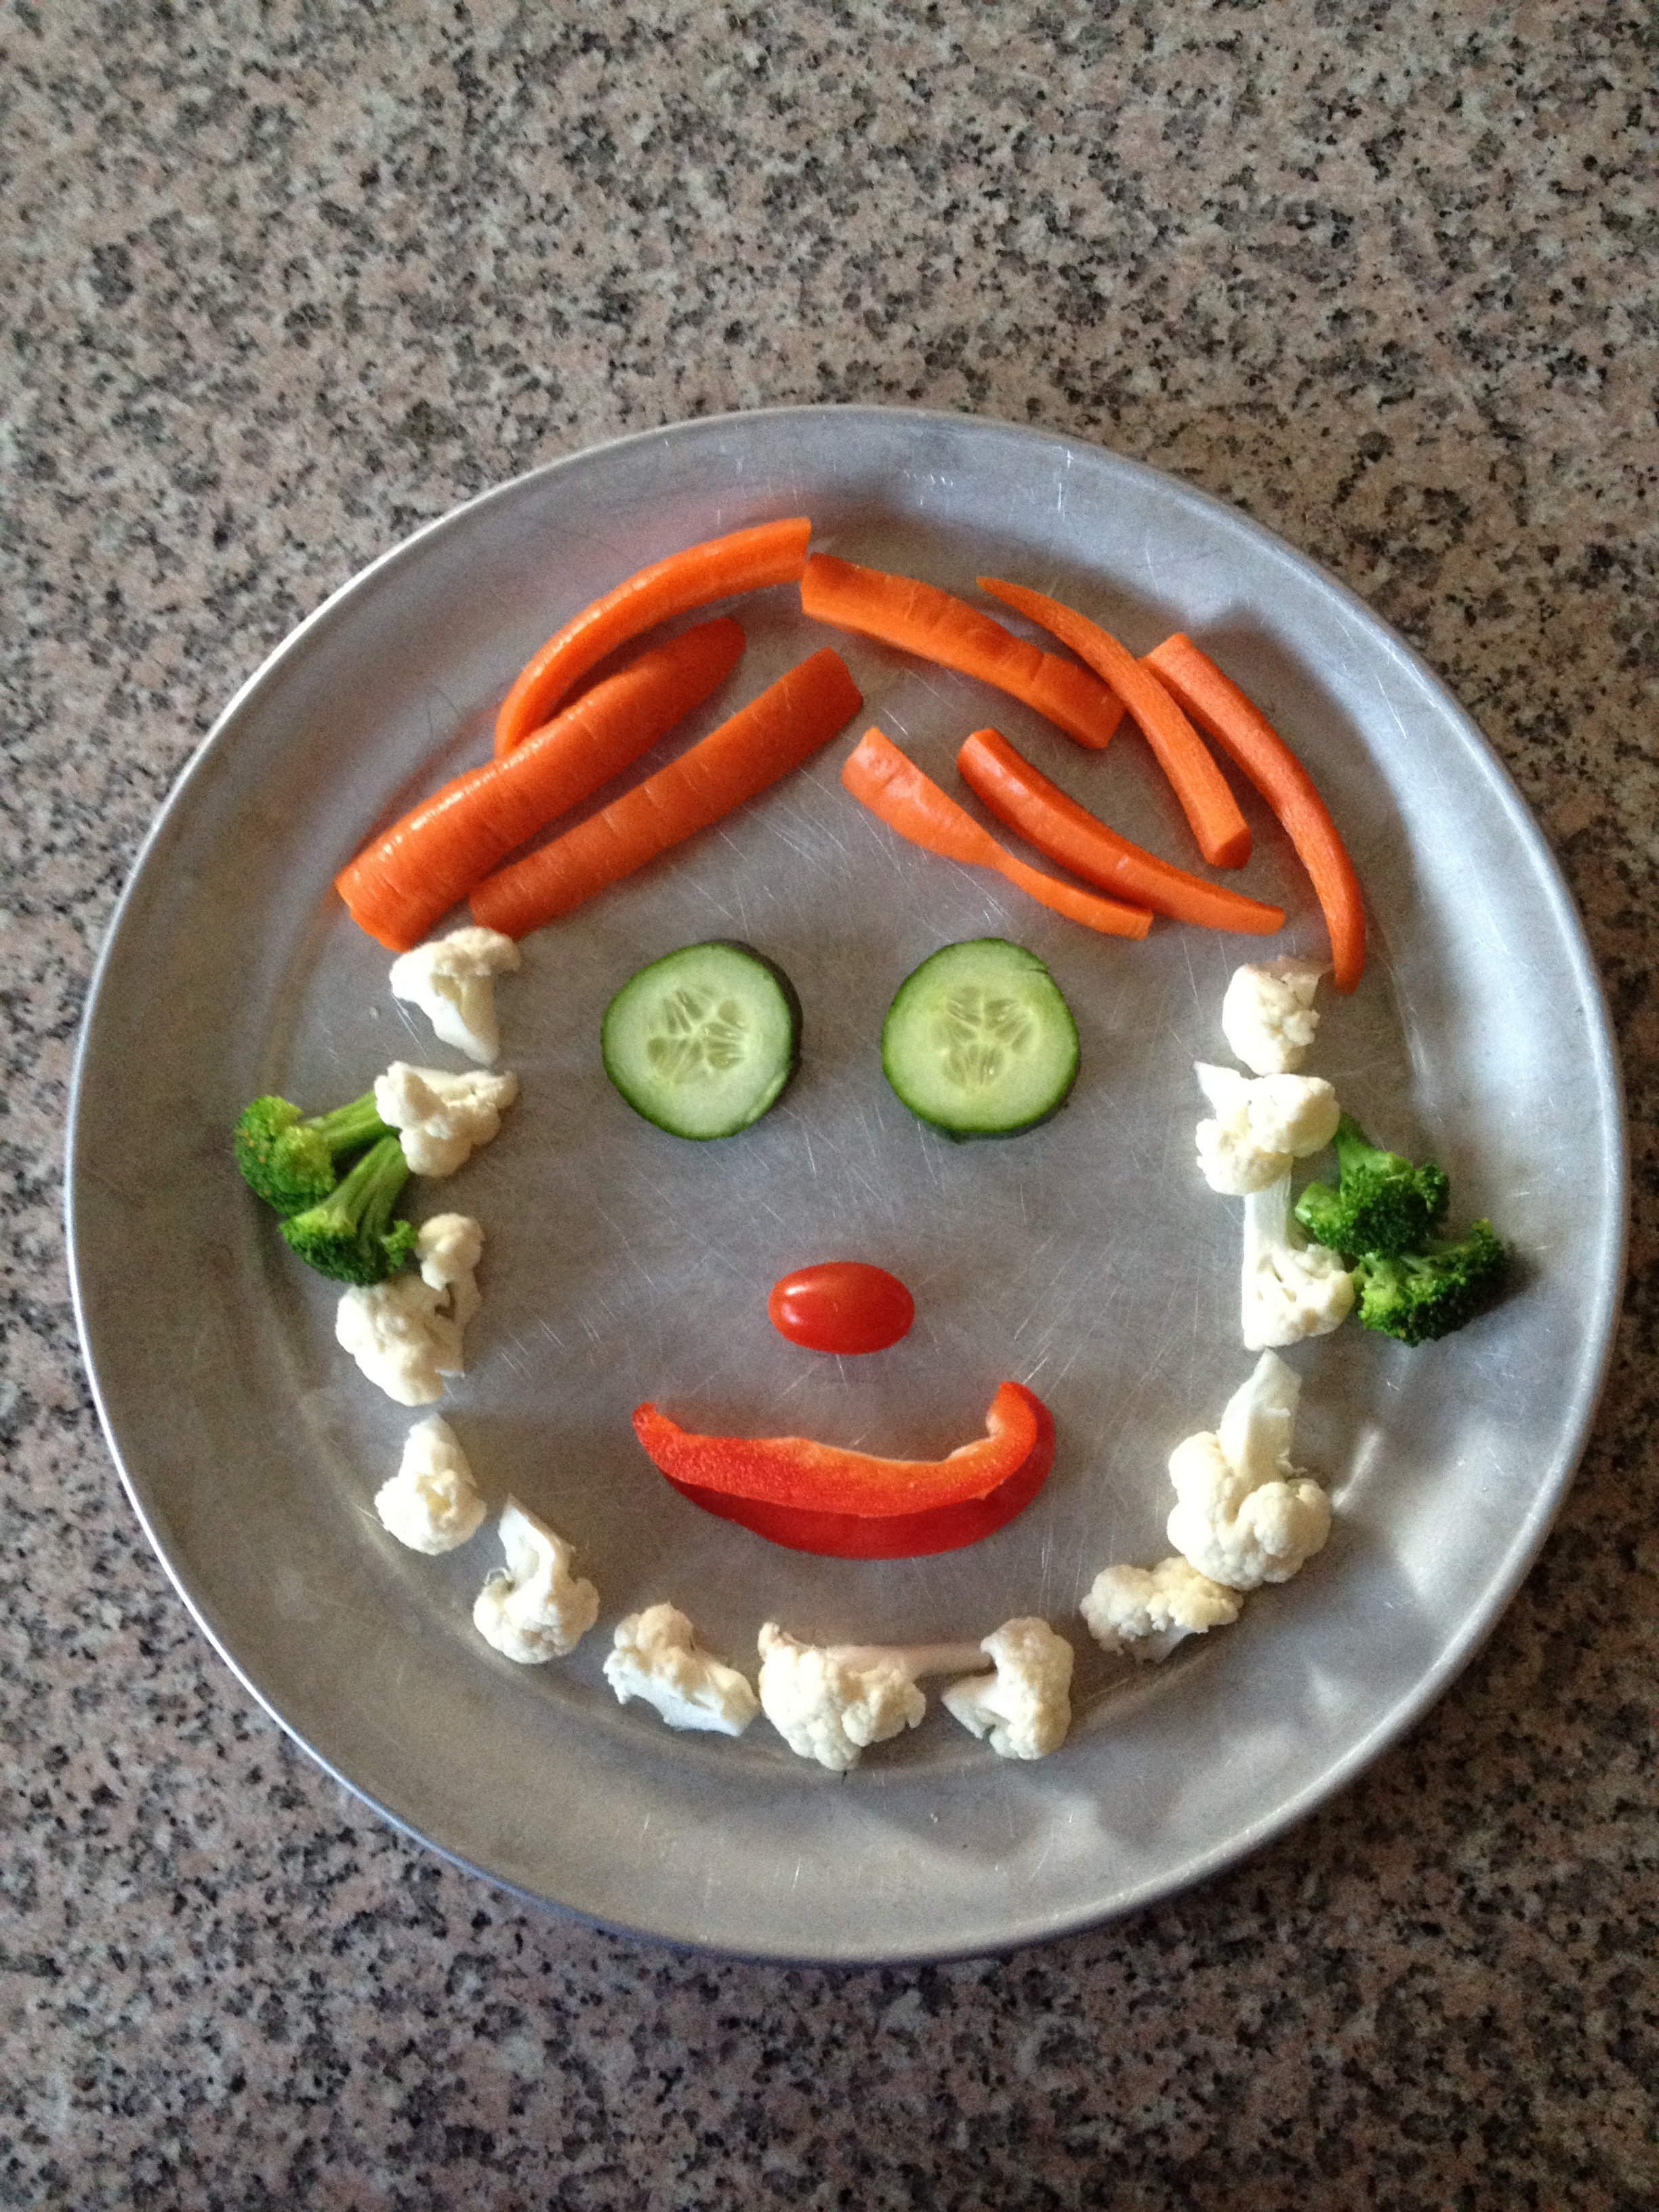 Veggie Art | Creating a Healthy Lifestyle